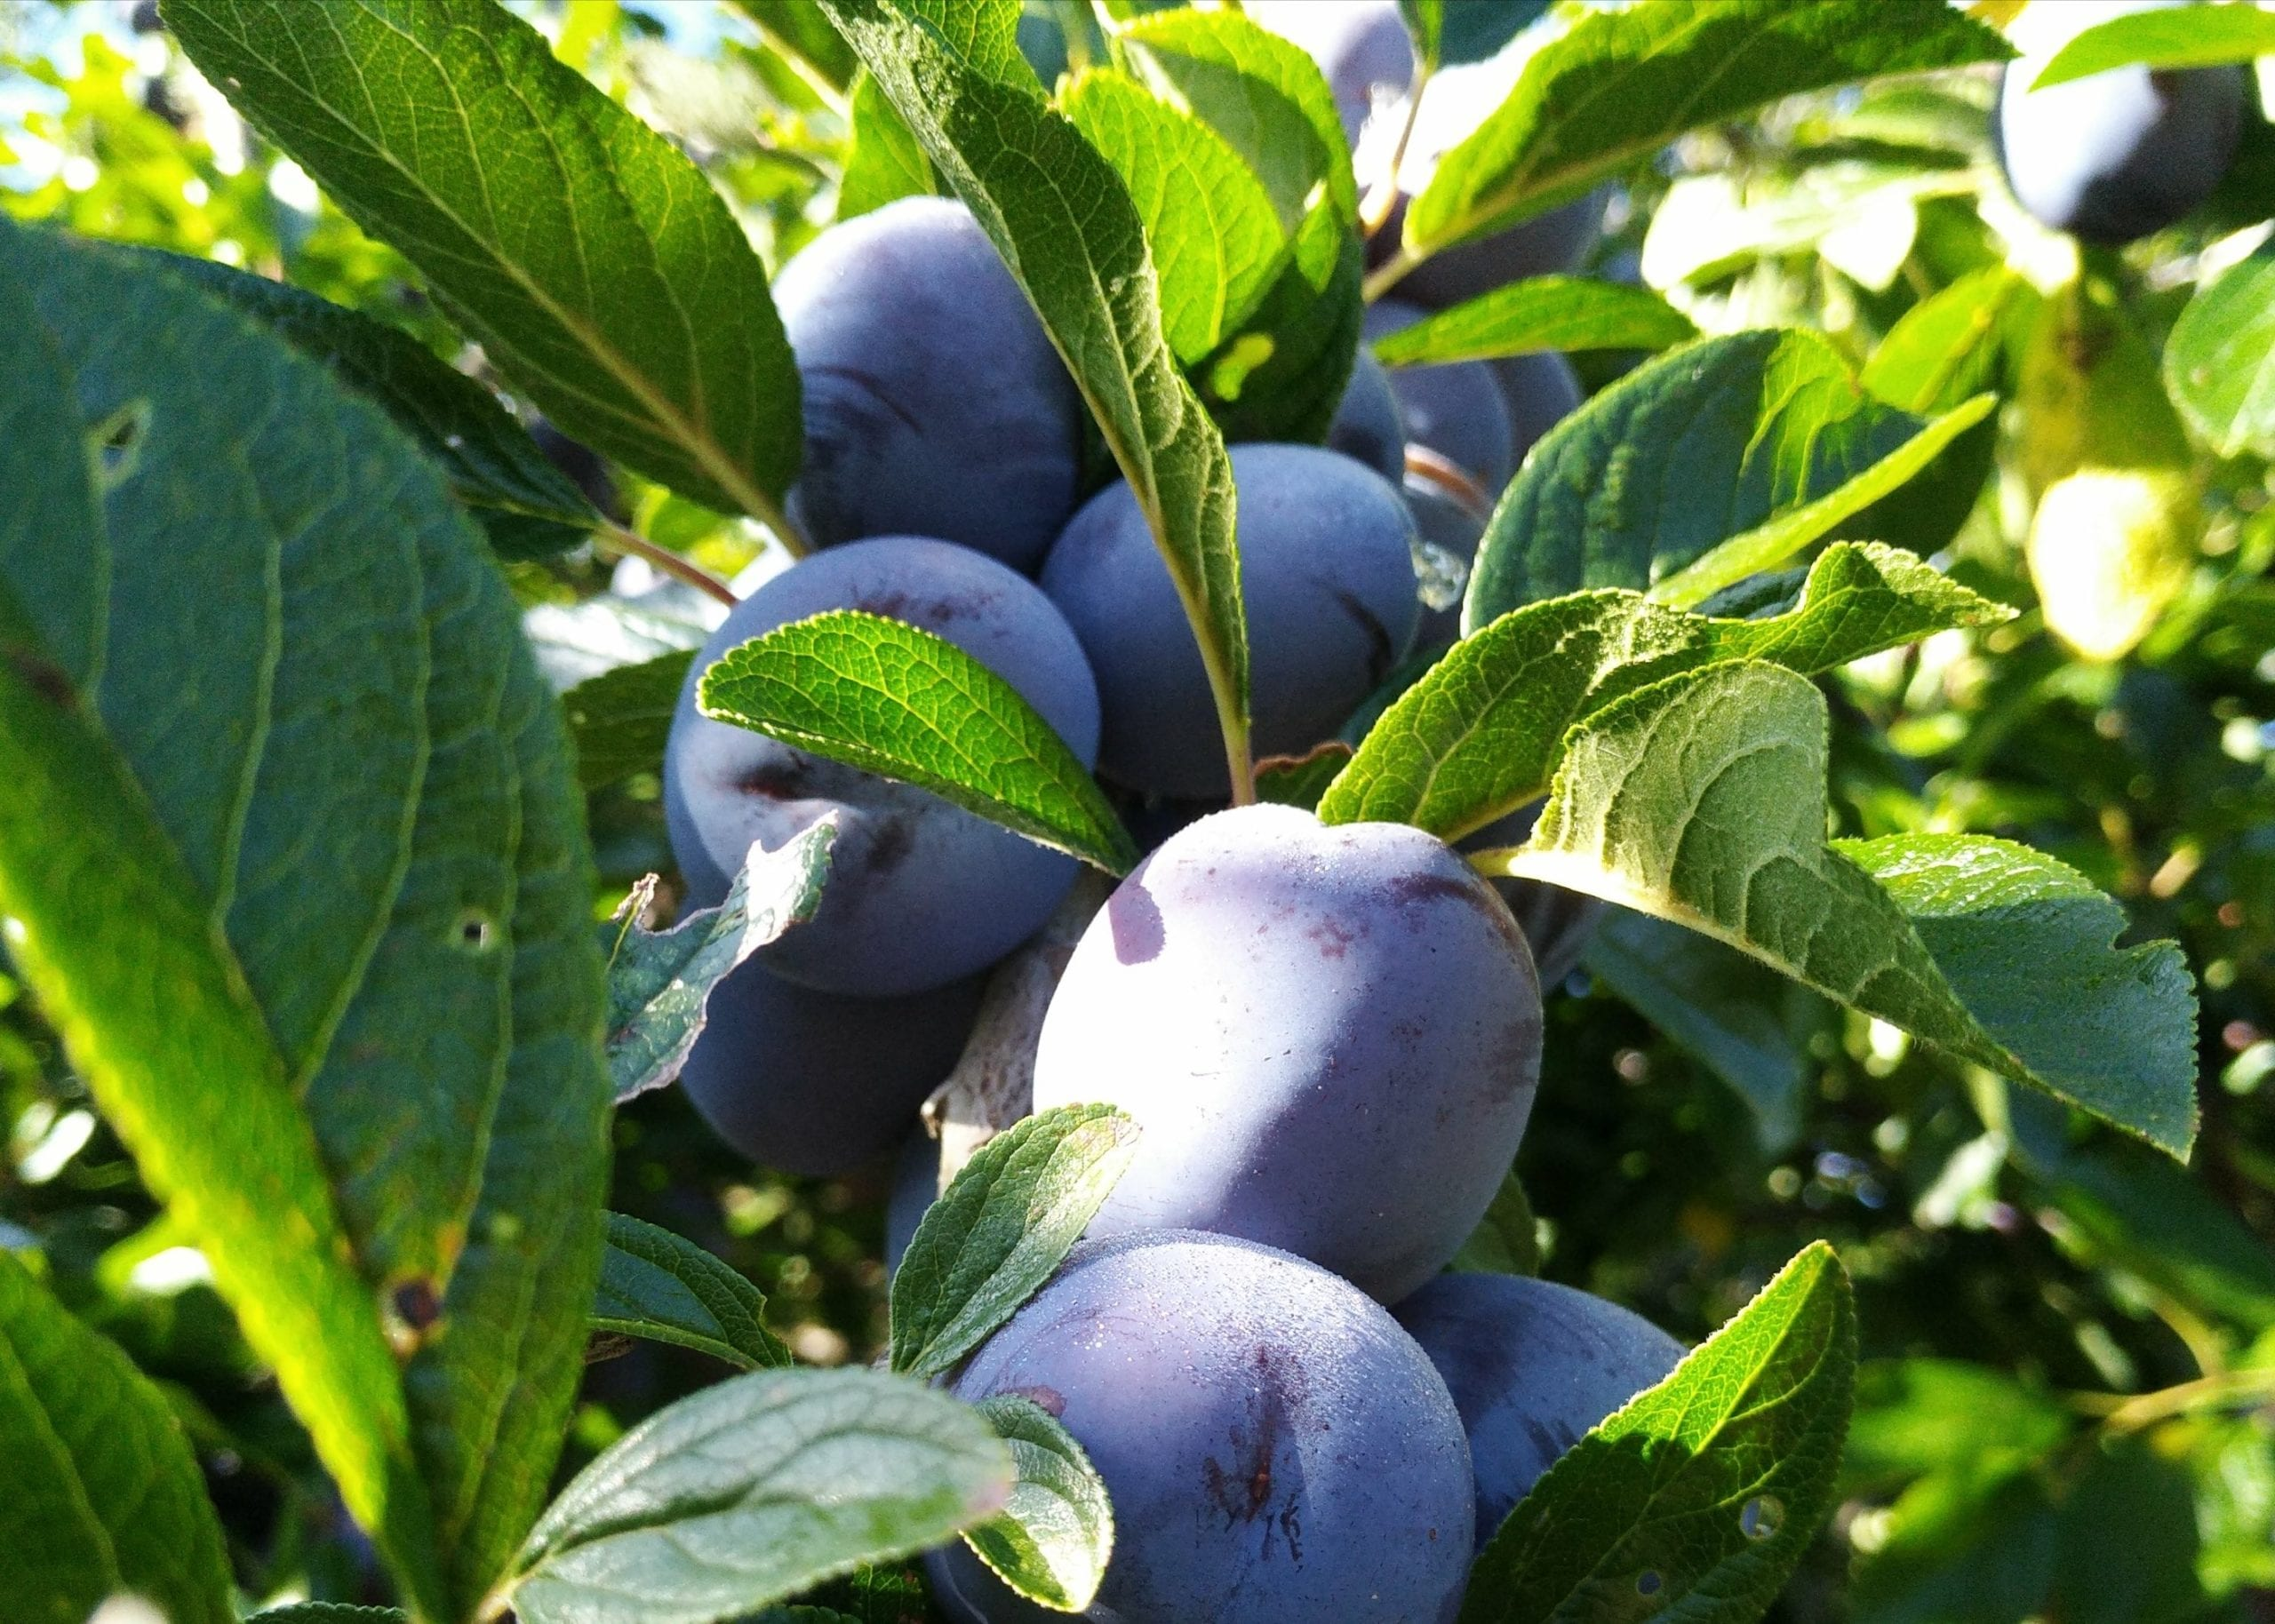 try some organic plums when you book your accommodation